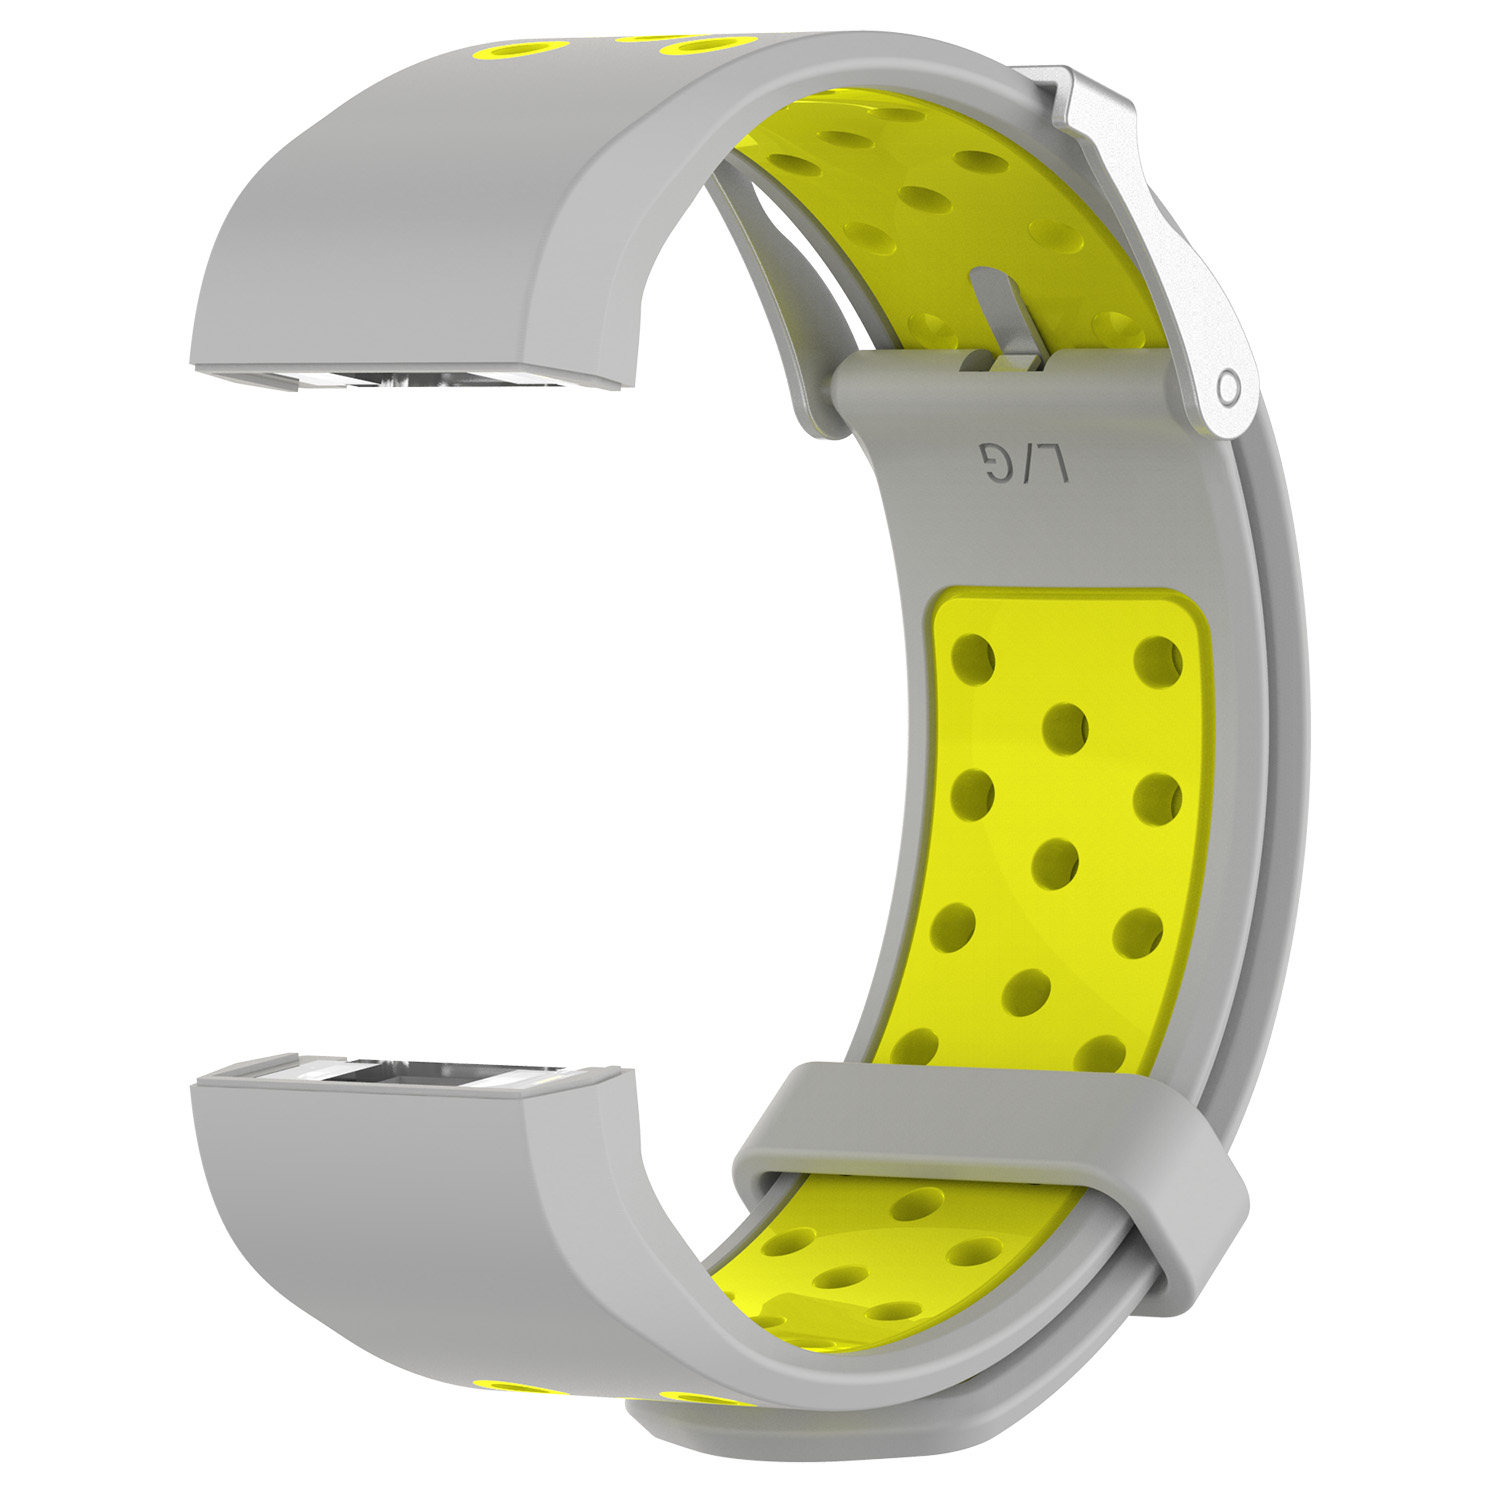 Replacement-Silicone-Wristband-Watch-Strap-Bands-Bracelet-For-Fitbit-Charge-2 thumbnail 93